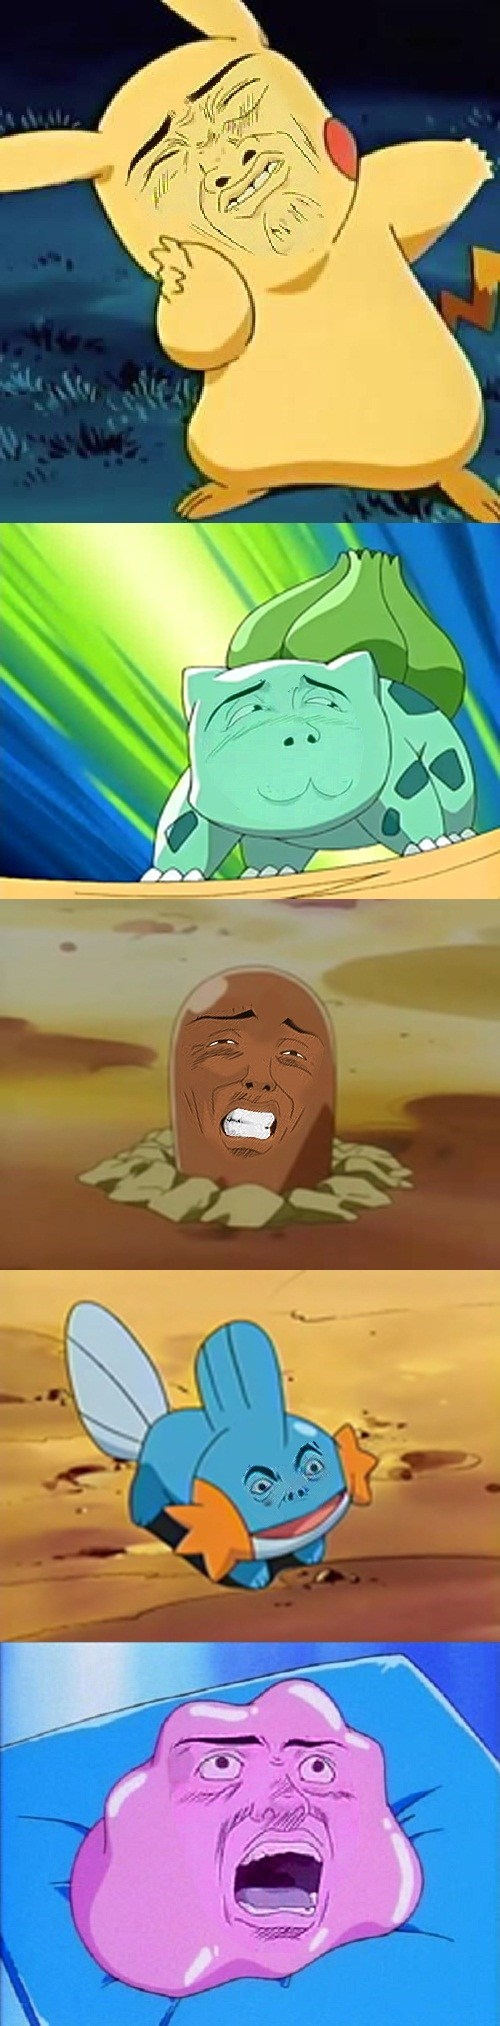 Pokémon gto funny faces omg